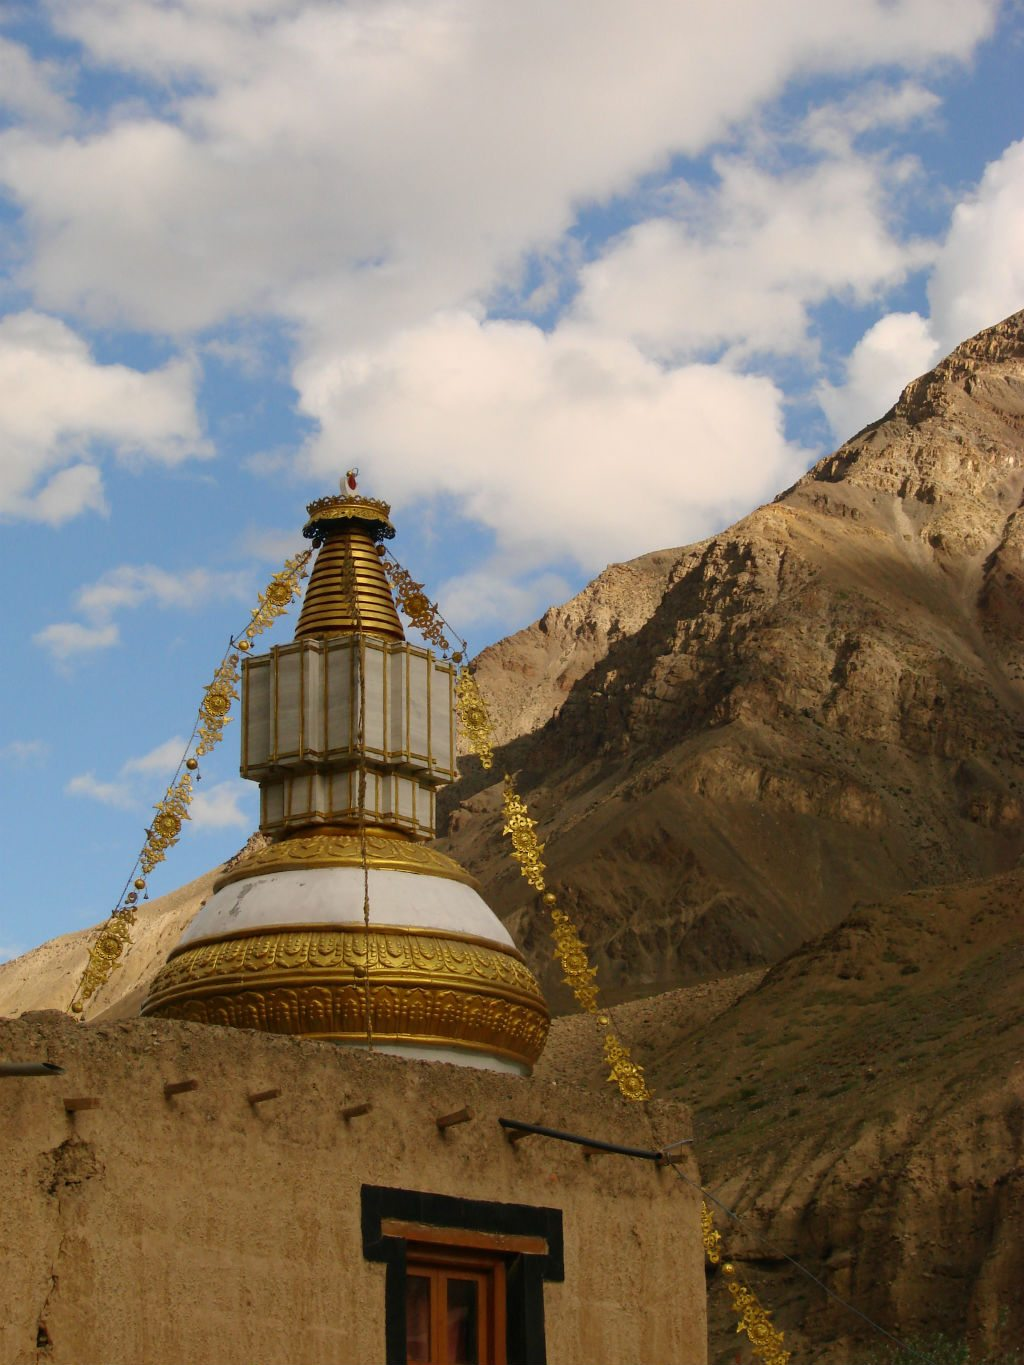 The Tabo Monastery is believed to be among the oldest operating Buddhist enclaves in the Himalayas. Photo: Nivedita Ravishankar/Flickr/Creative Commons (http://bit.ly/1jxQJMa)